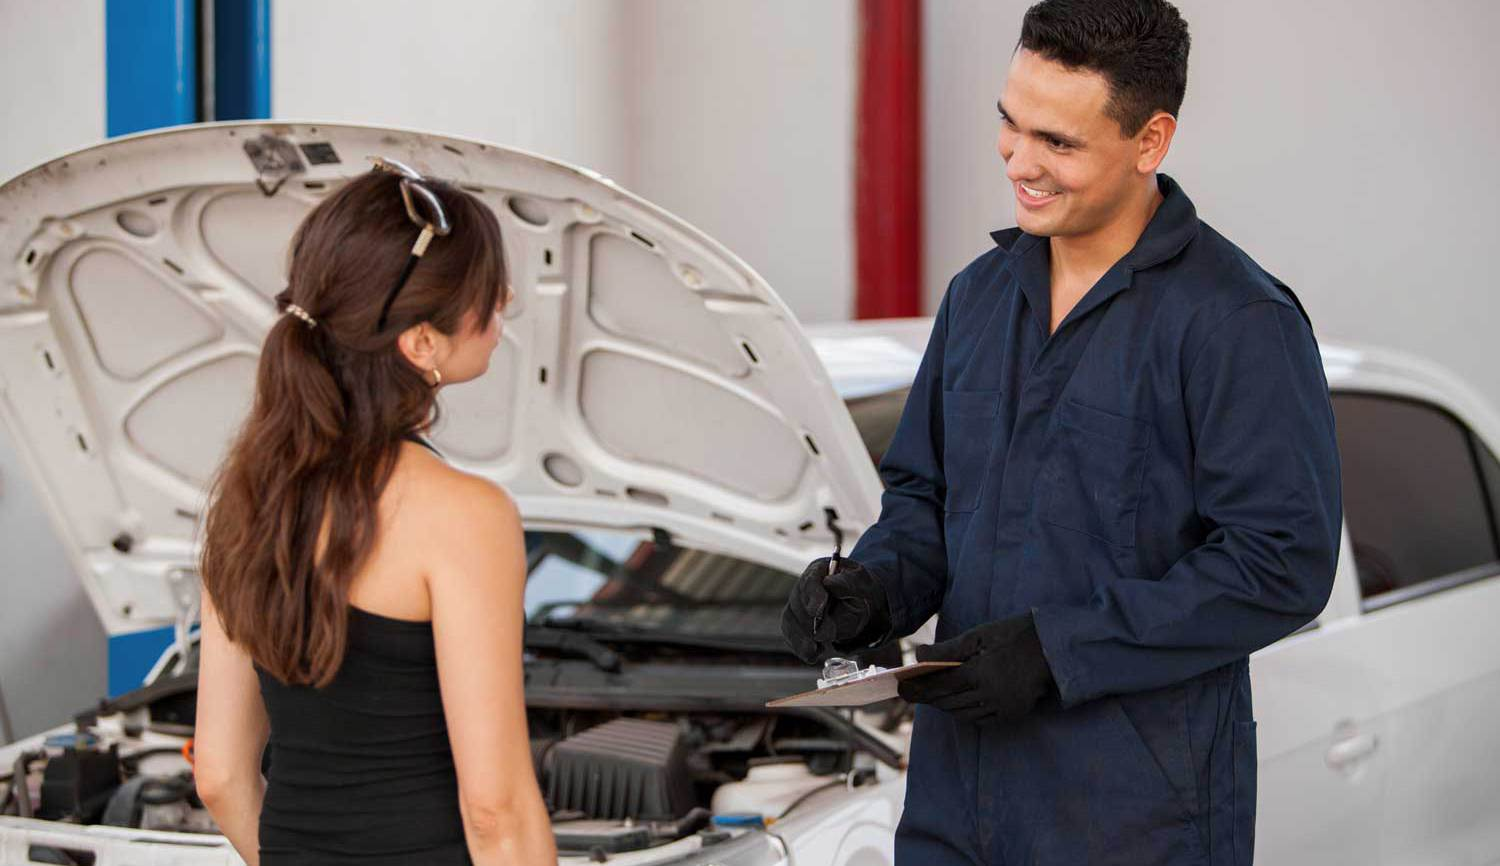 Mechanic with a happy customer